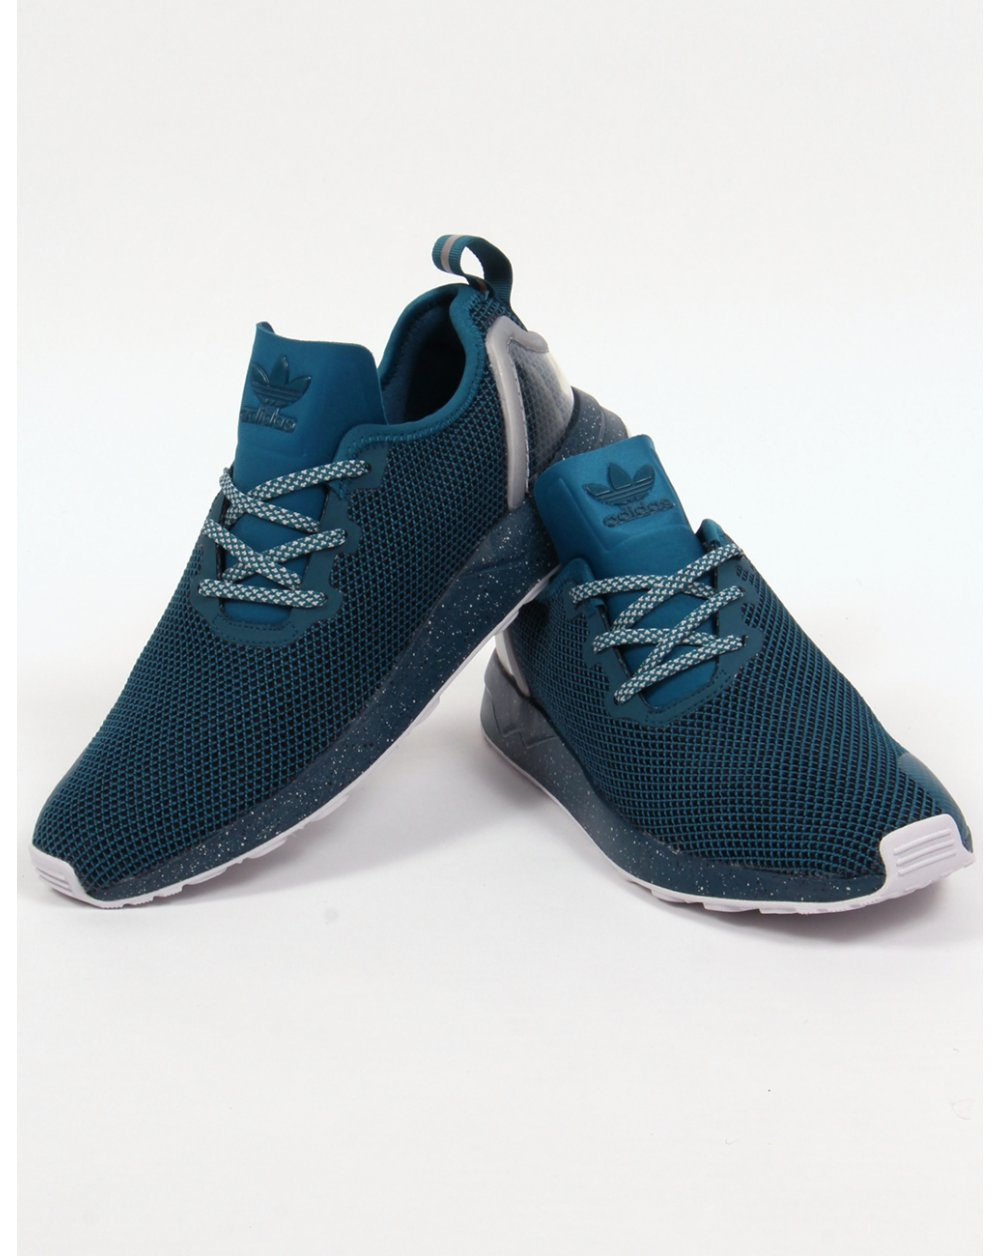 adidas zx flux racer asym trainers serpent blue runners shoes originals. Black Bedroom Furniture Sets. Home Design Ideas